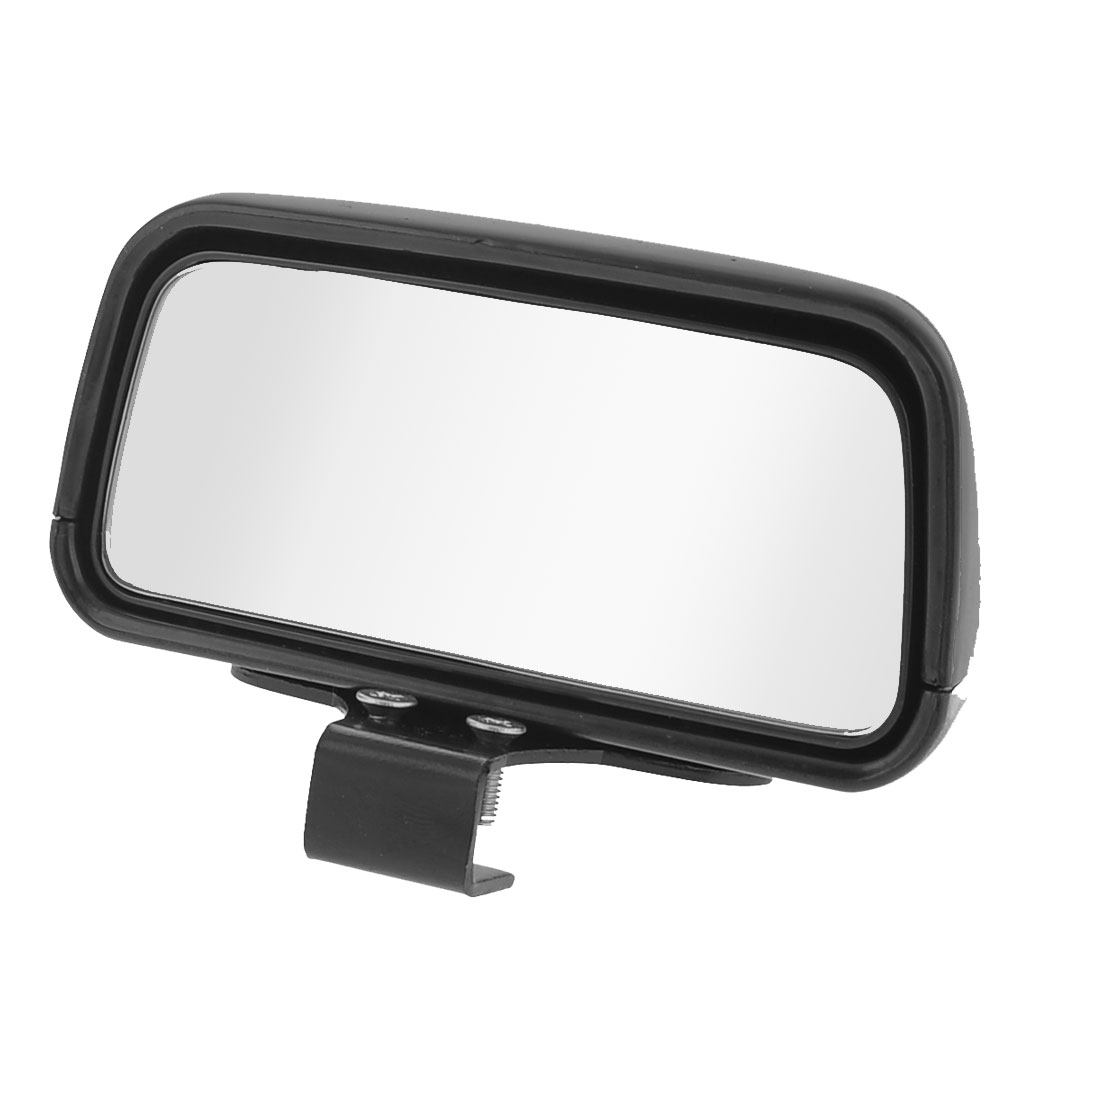 Black Casing Side Rear View Blind Spot Auxiliary Mirror Black for Vehicle Car